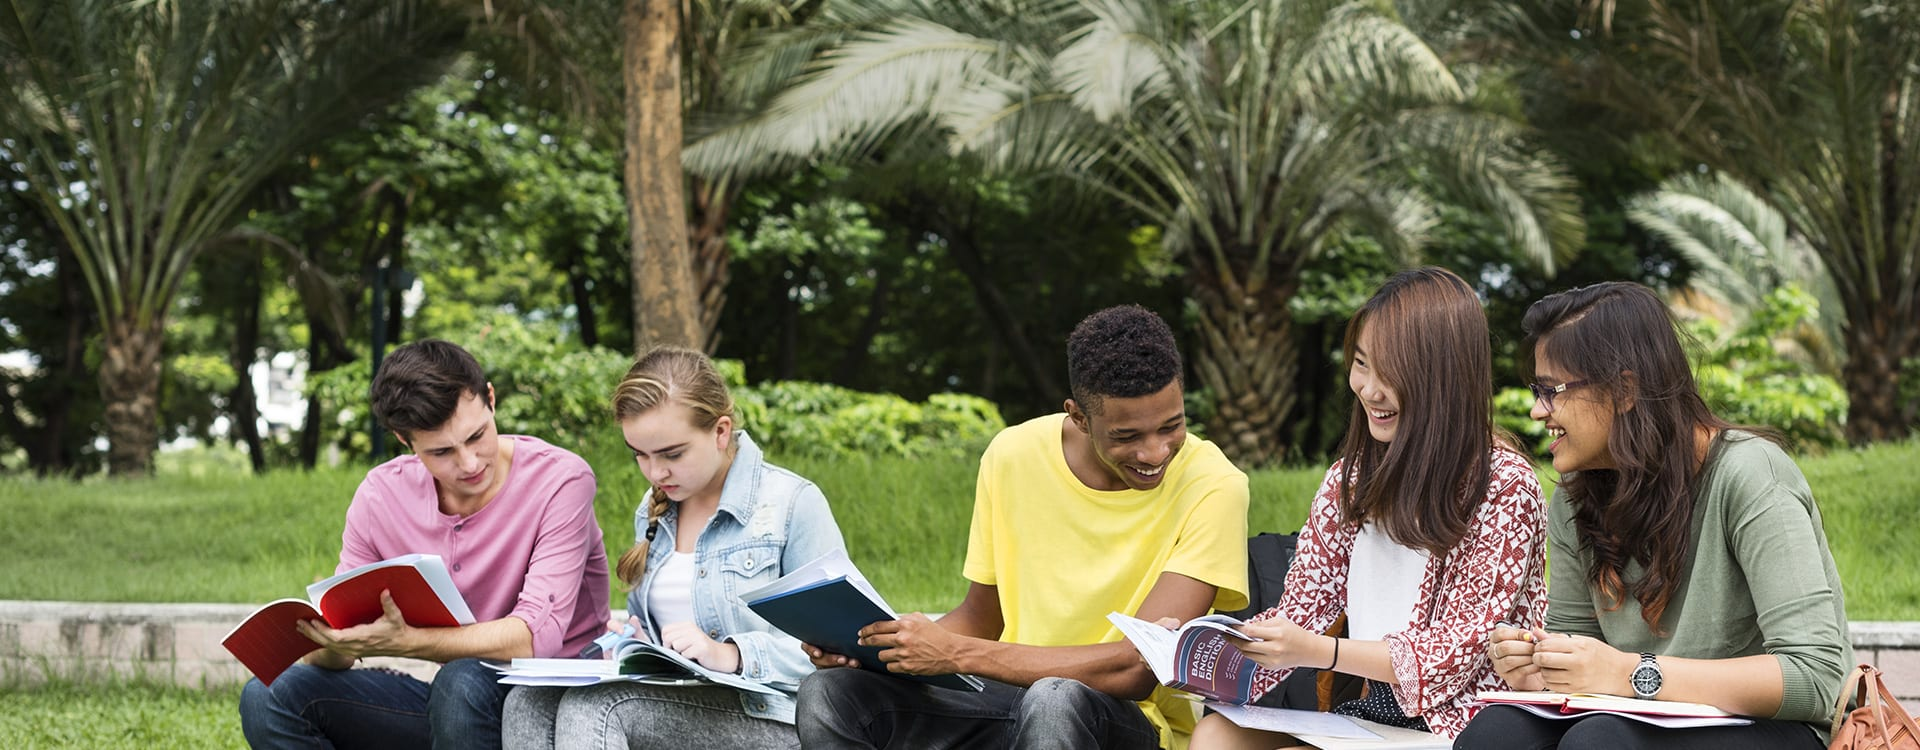 Teenagers sitting in the park while reading books